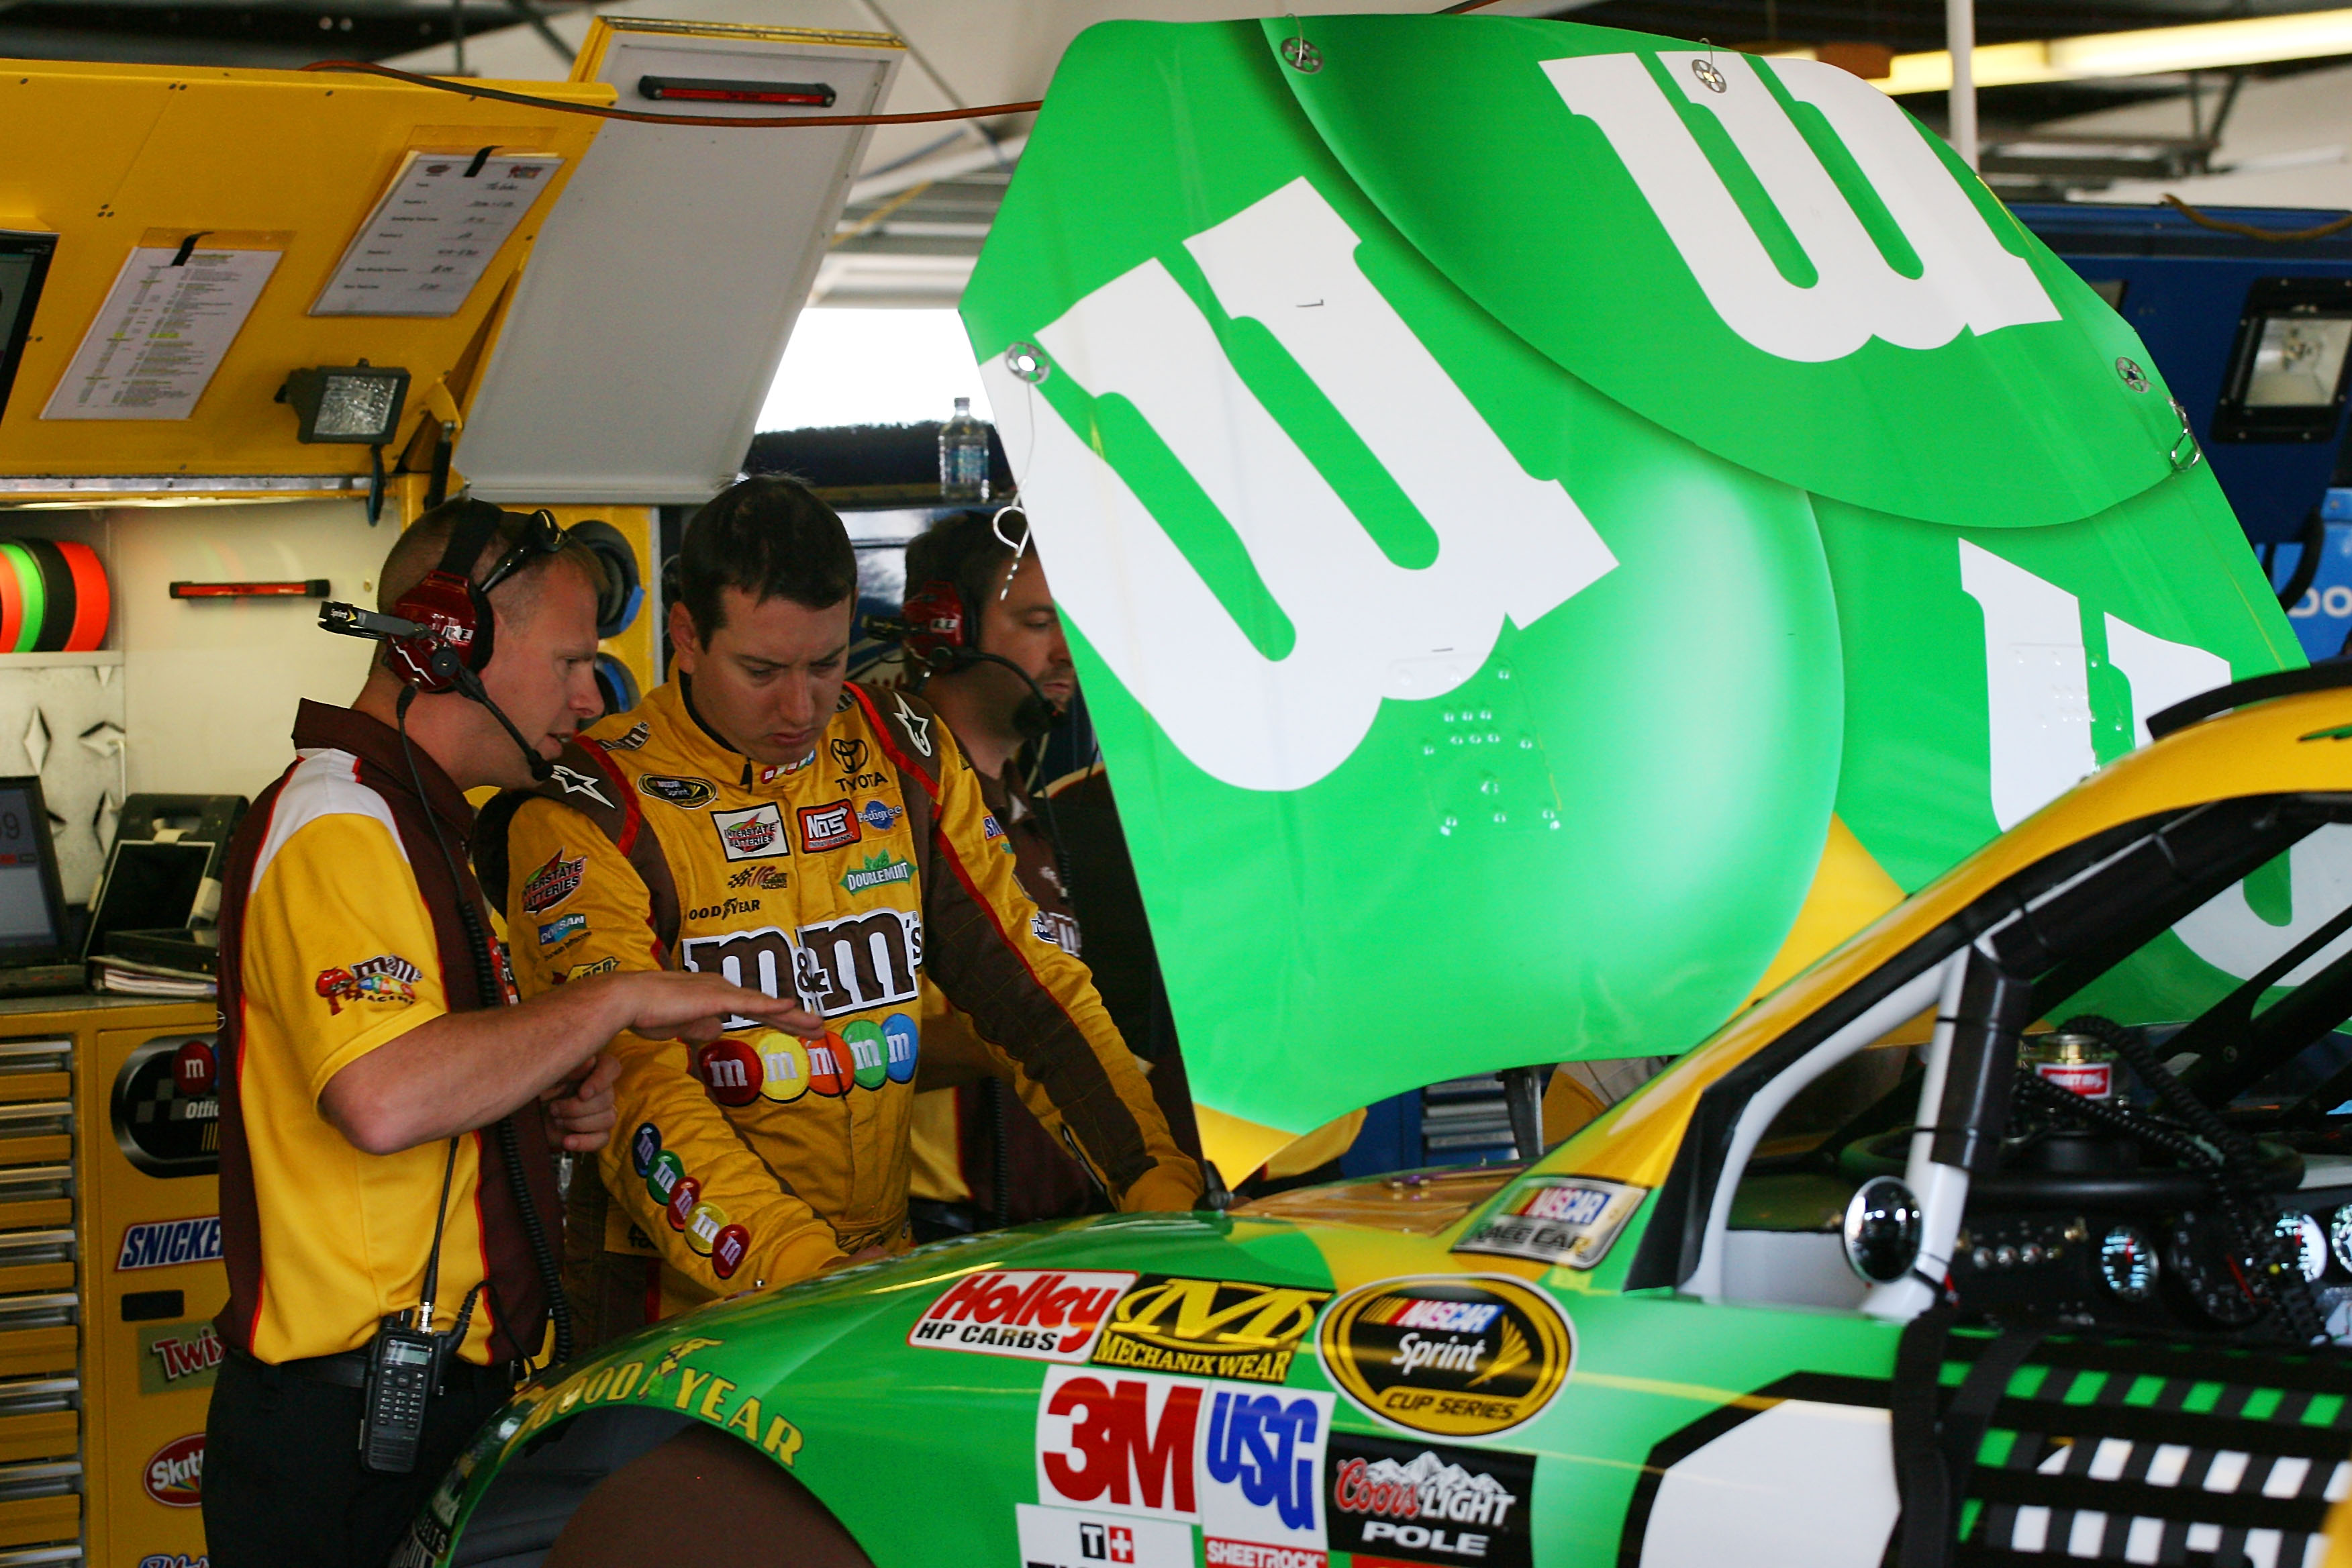 WATKINS GLEN, NY - AUGUST 06:  Kyle Busch (R), driver of the #18 M&M's Toyota, talks with his crew chief Dave Rogers in the garage during practice for the NASCAR Heluva Good! Sour Cream Dips at The Glen on August 6, 2010 in Watkins Glen, New York.  (Photo